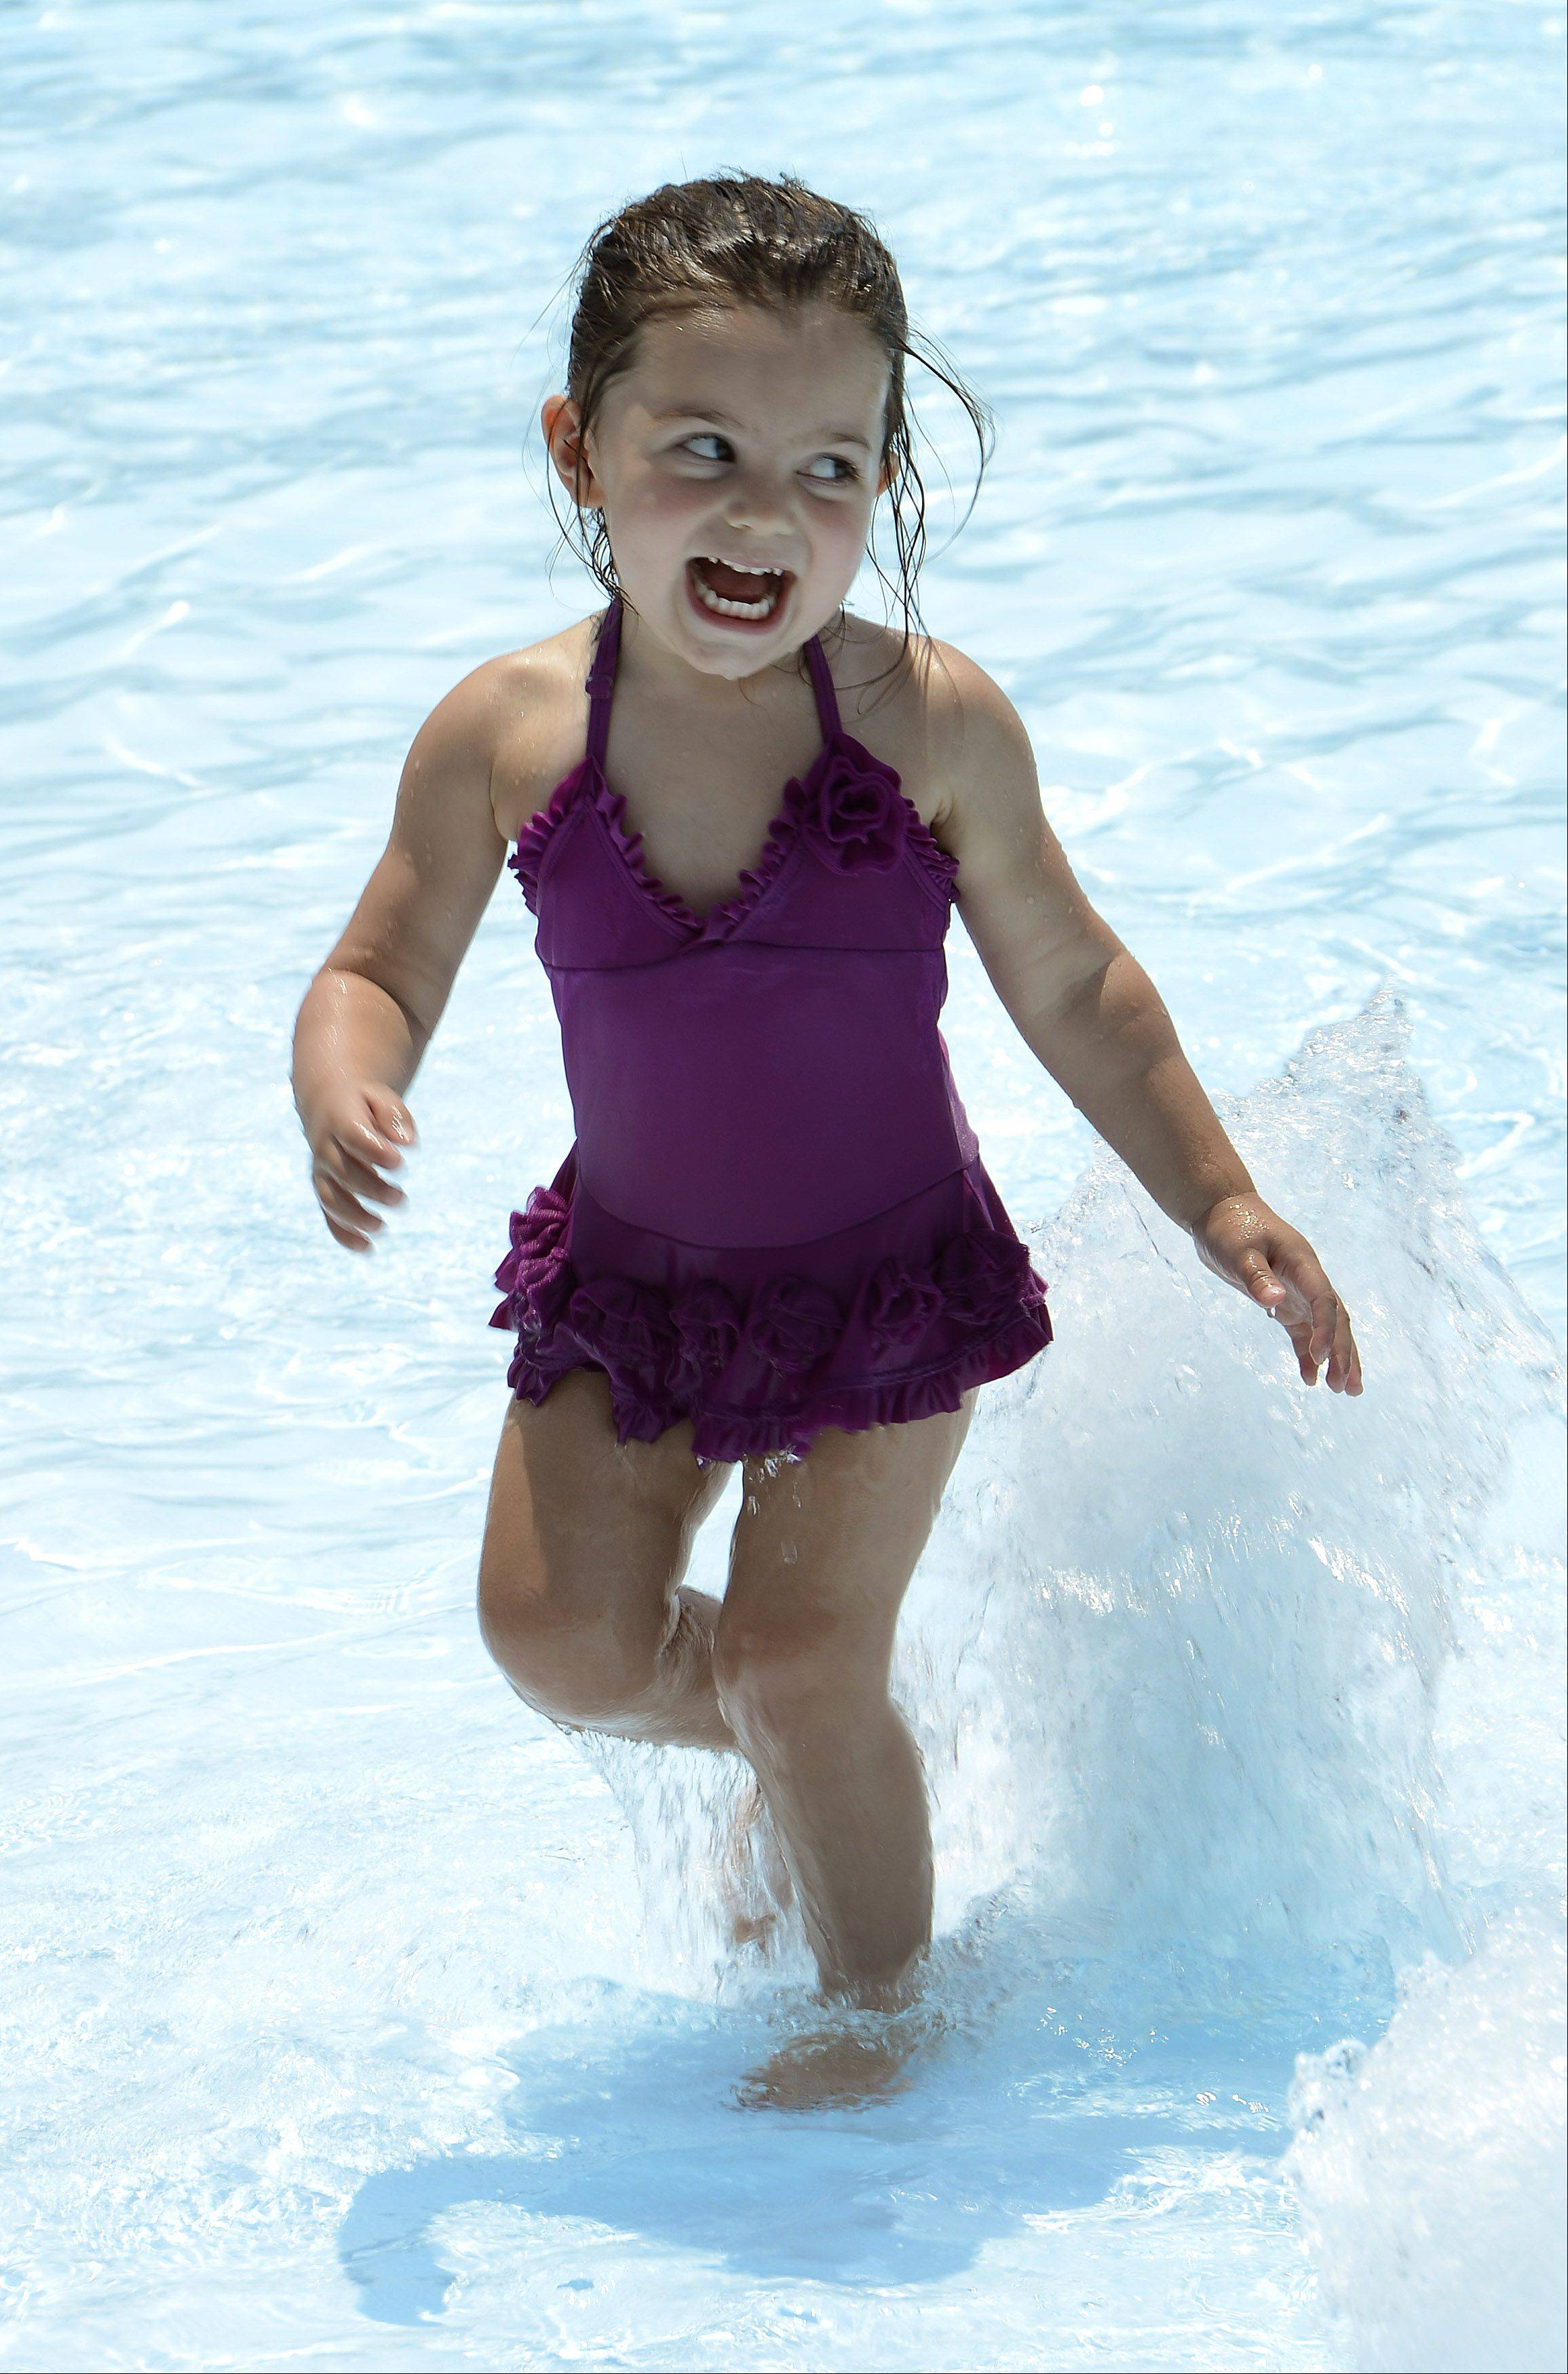 The heat didn't slow down two year old Lia LaValle of Arlington Heights Friday at the Meadows Park Aquatic Center in Mount Prospect.